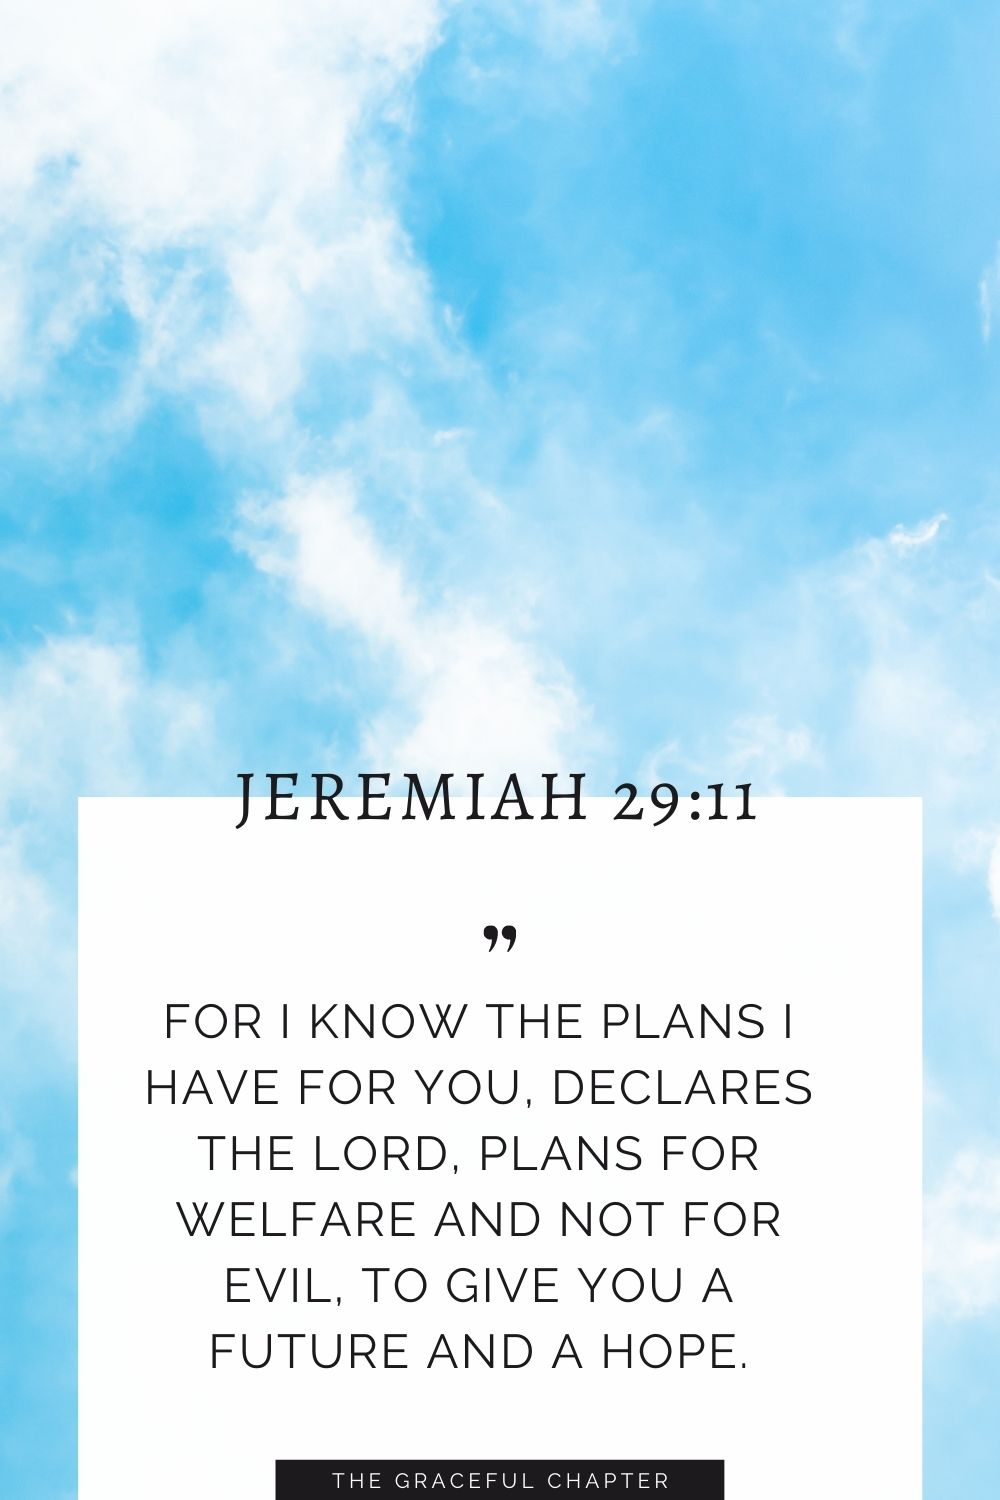 For I know the plans I have for you, declares the Lord, plans for welfare and not for evil, to give you a future and a hope. Jeremiah 29:11